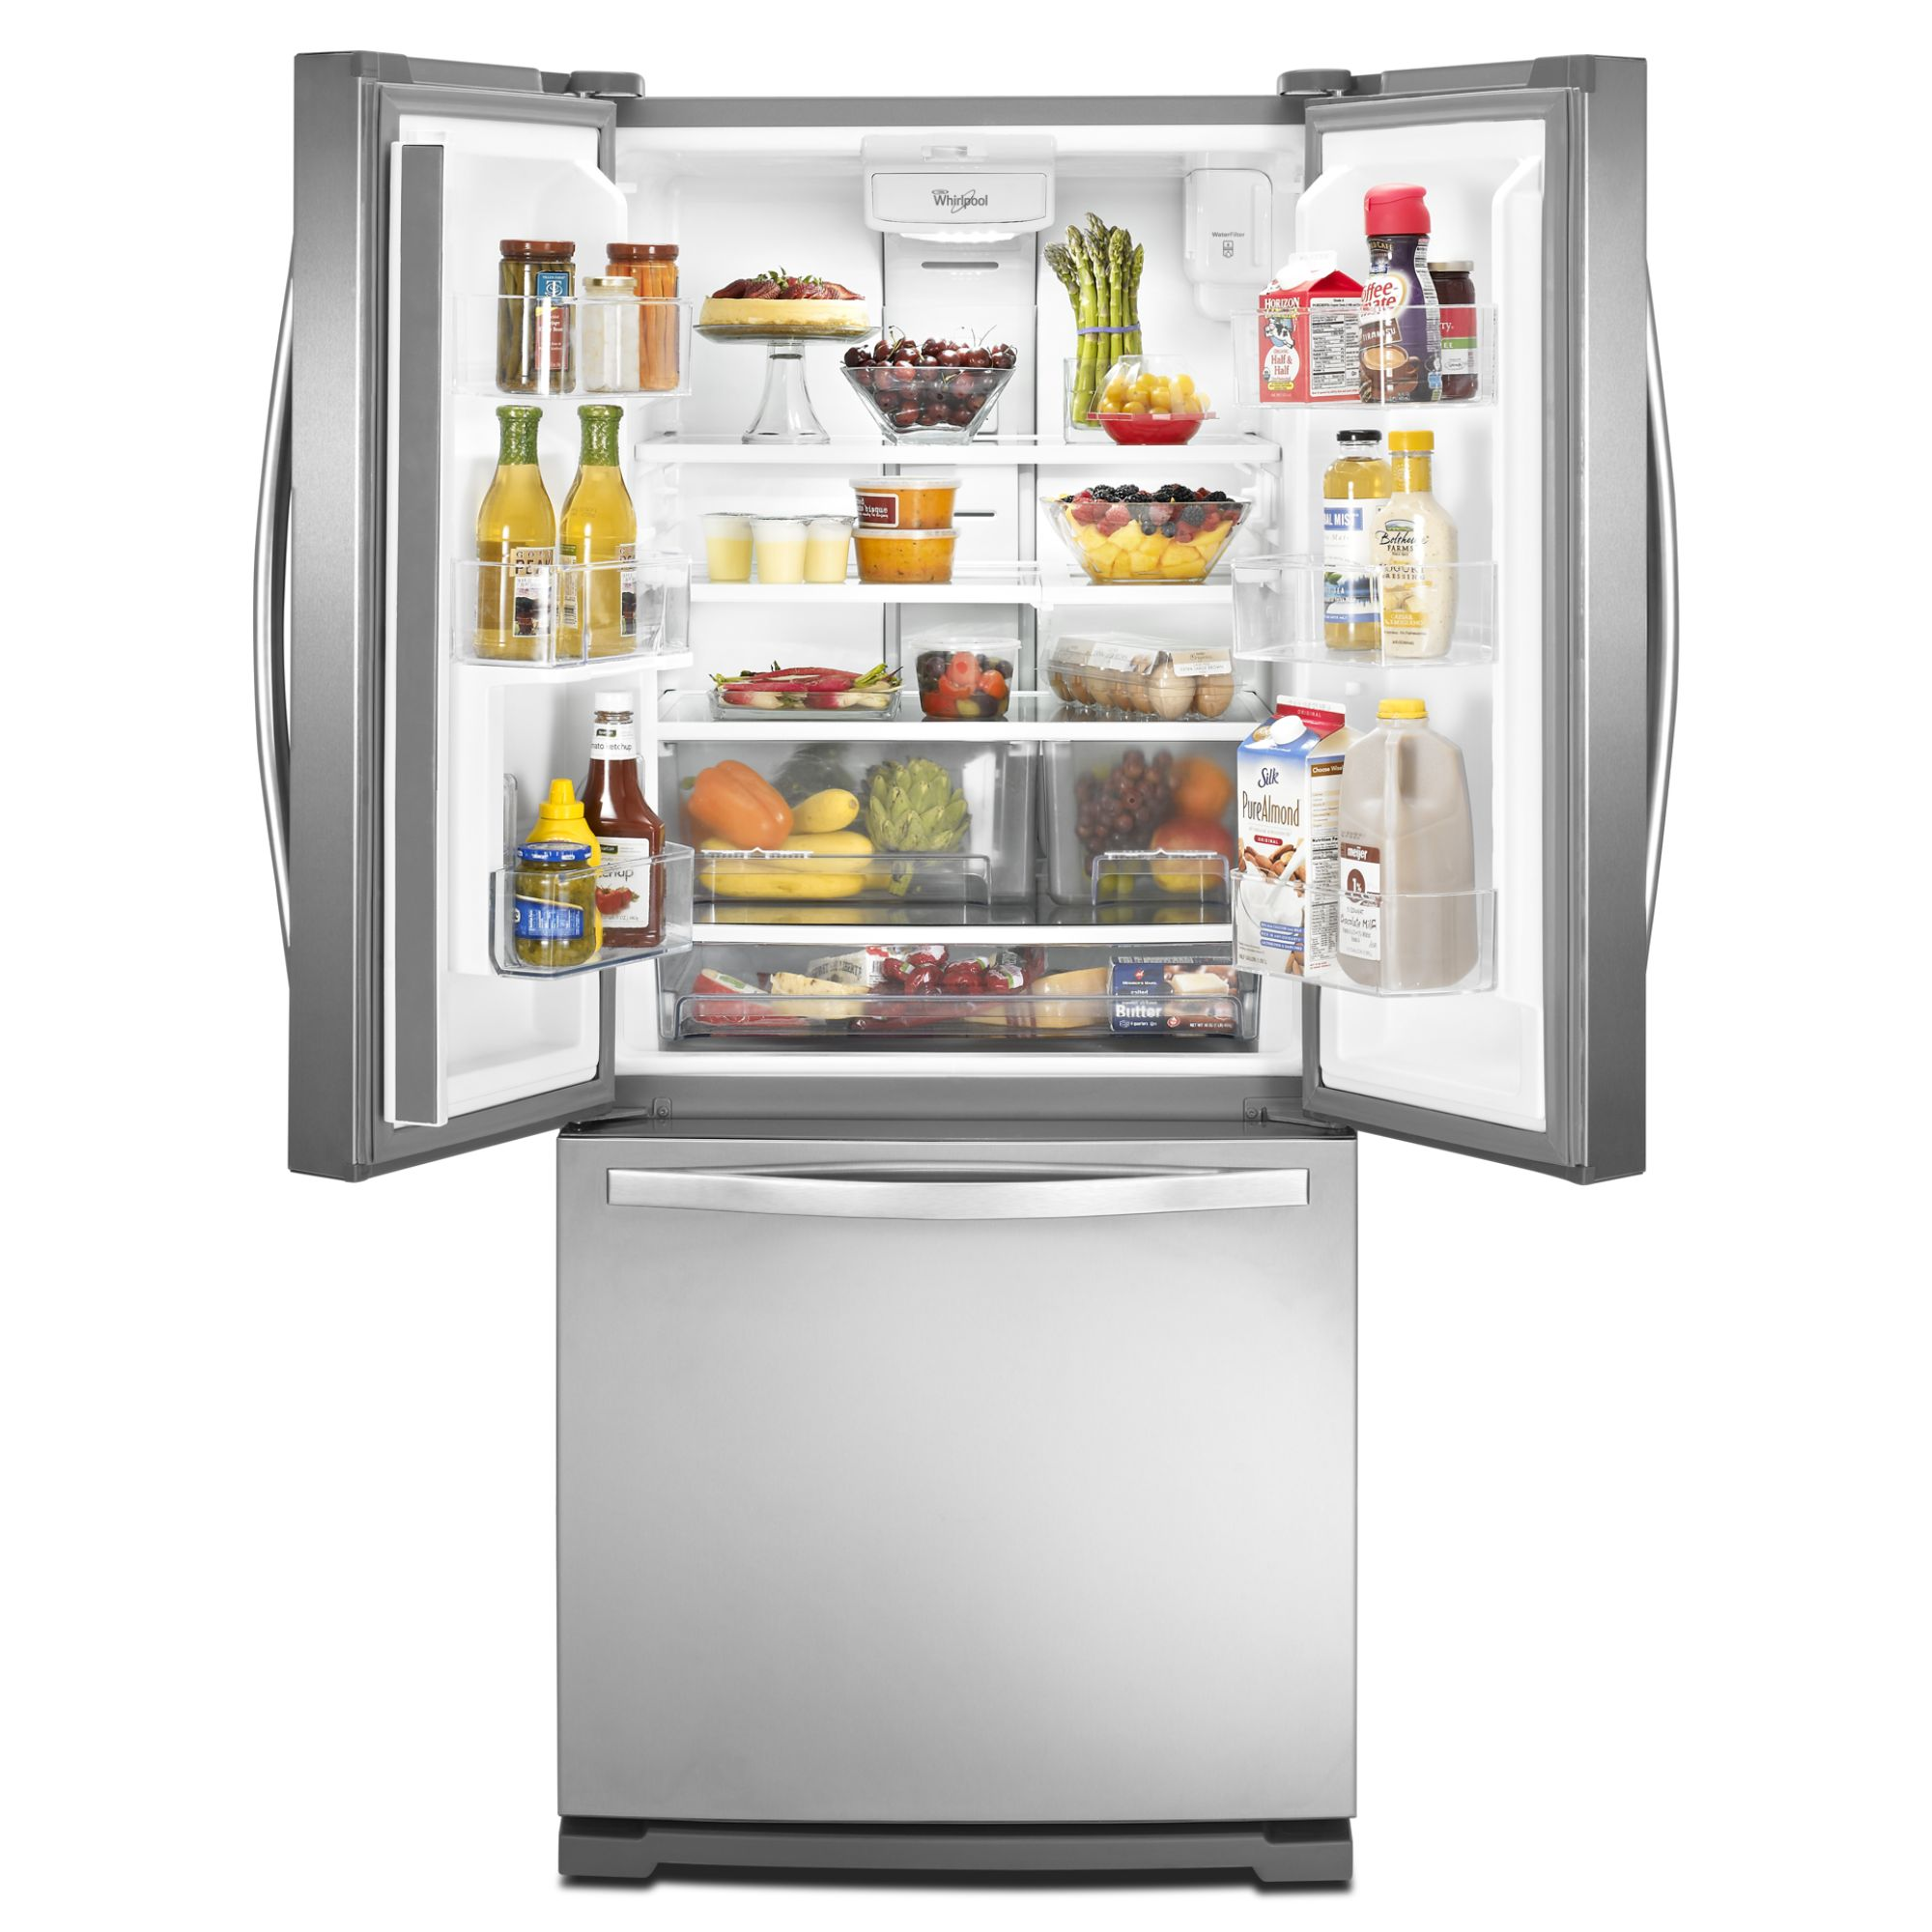 Whirlpool WRF560SMYM 19.7 Cu. Ft. French-Door Bottom-Freezer Stainless Steel Refrigerator